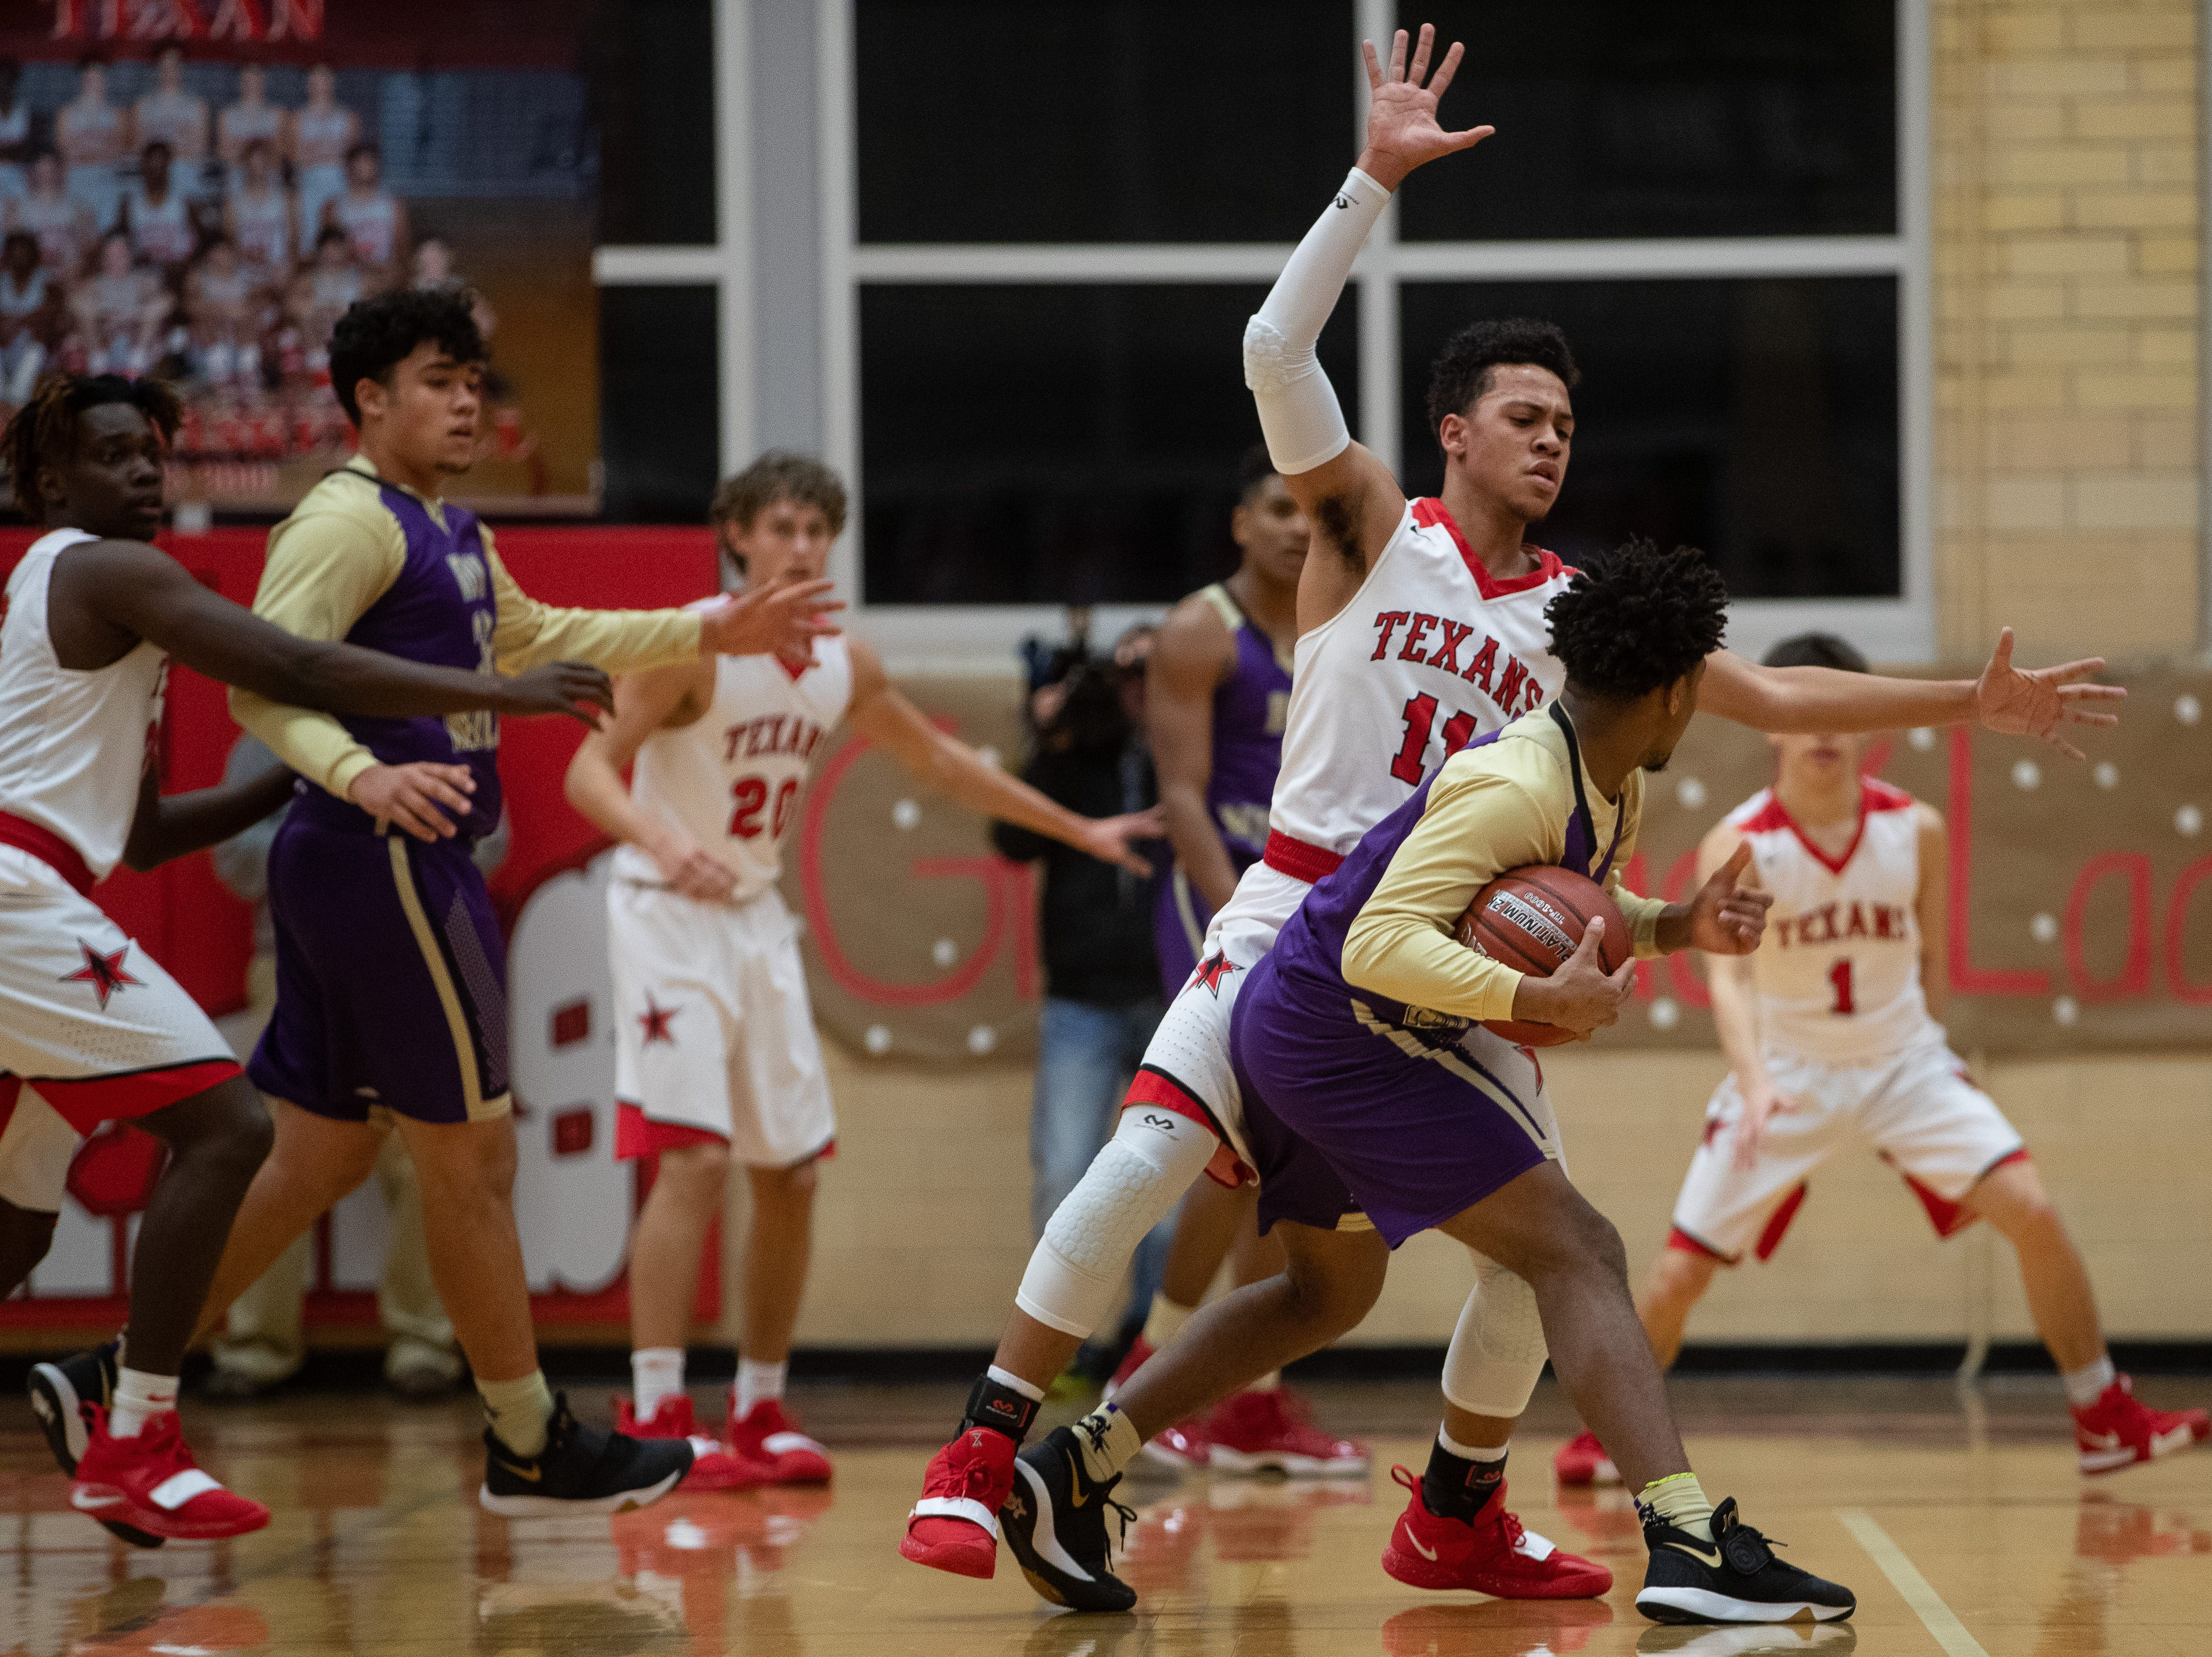 Ray basketball defeats Miller 61-48 at Ray High School on Wednesday, Jan. 2, 2019.